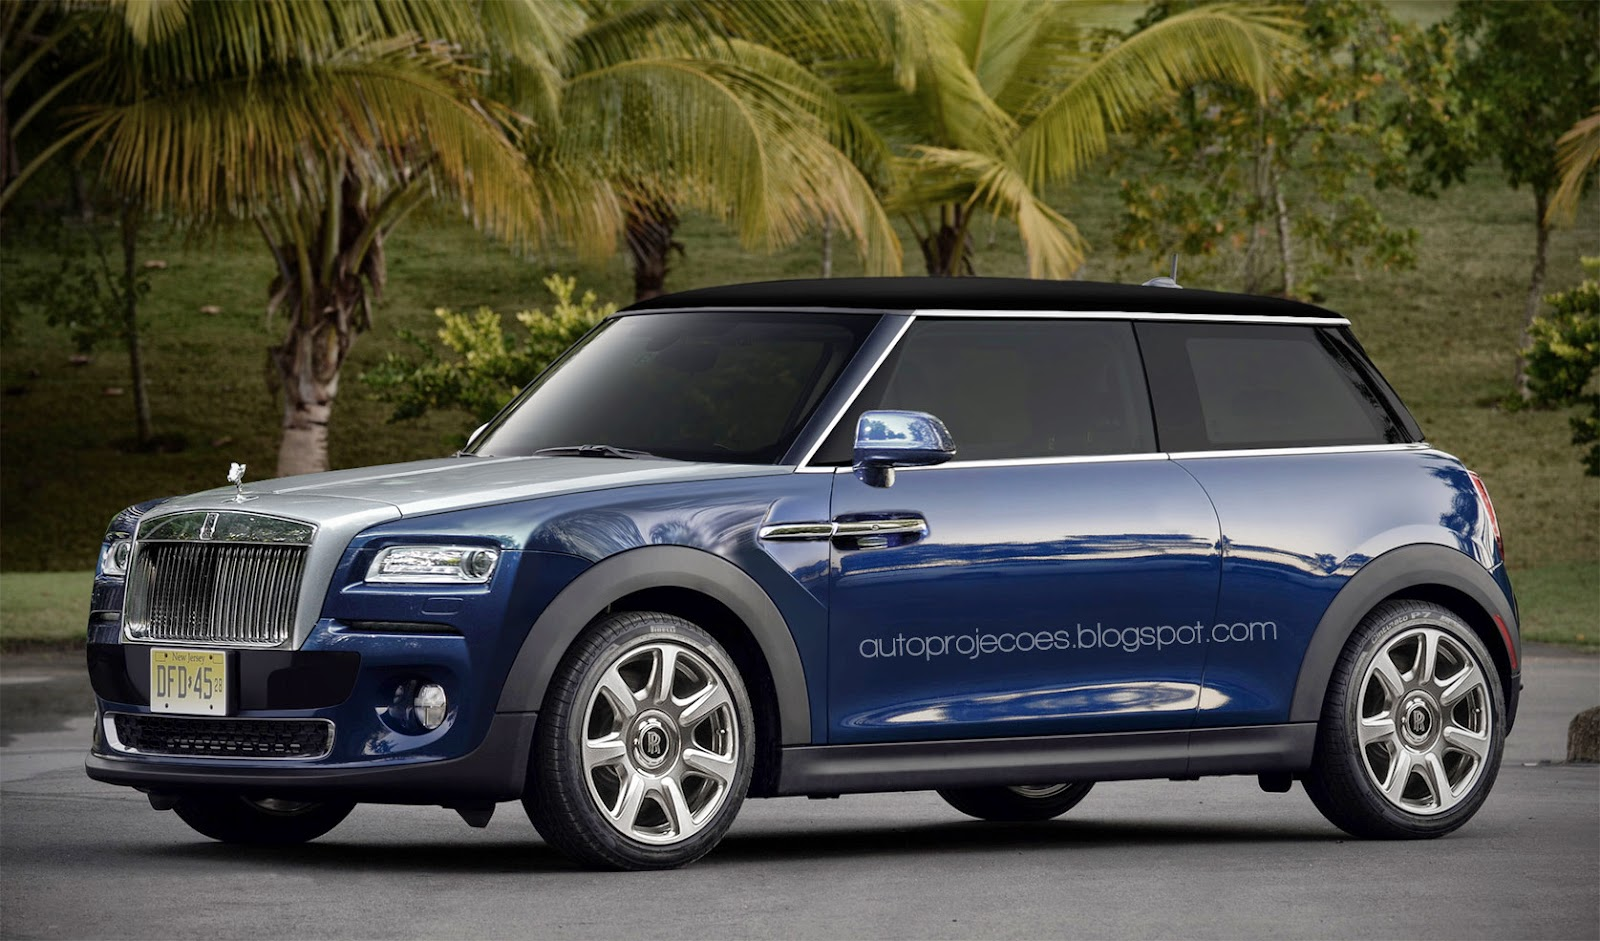 Rolls Royce Mini Rendered High End Luxury Compact Autoevolution